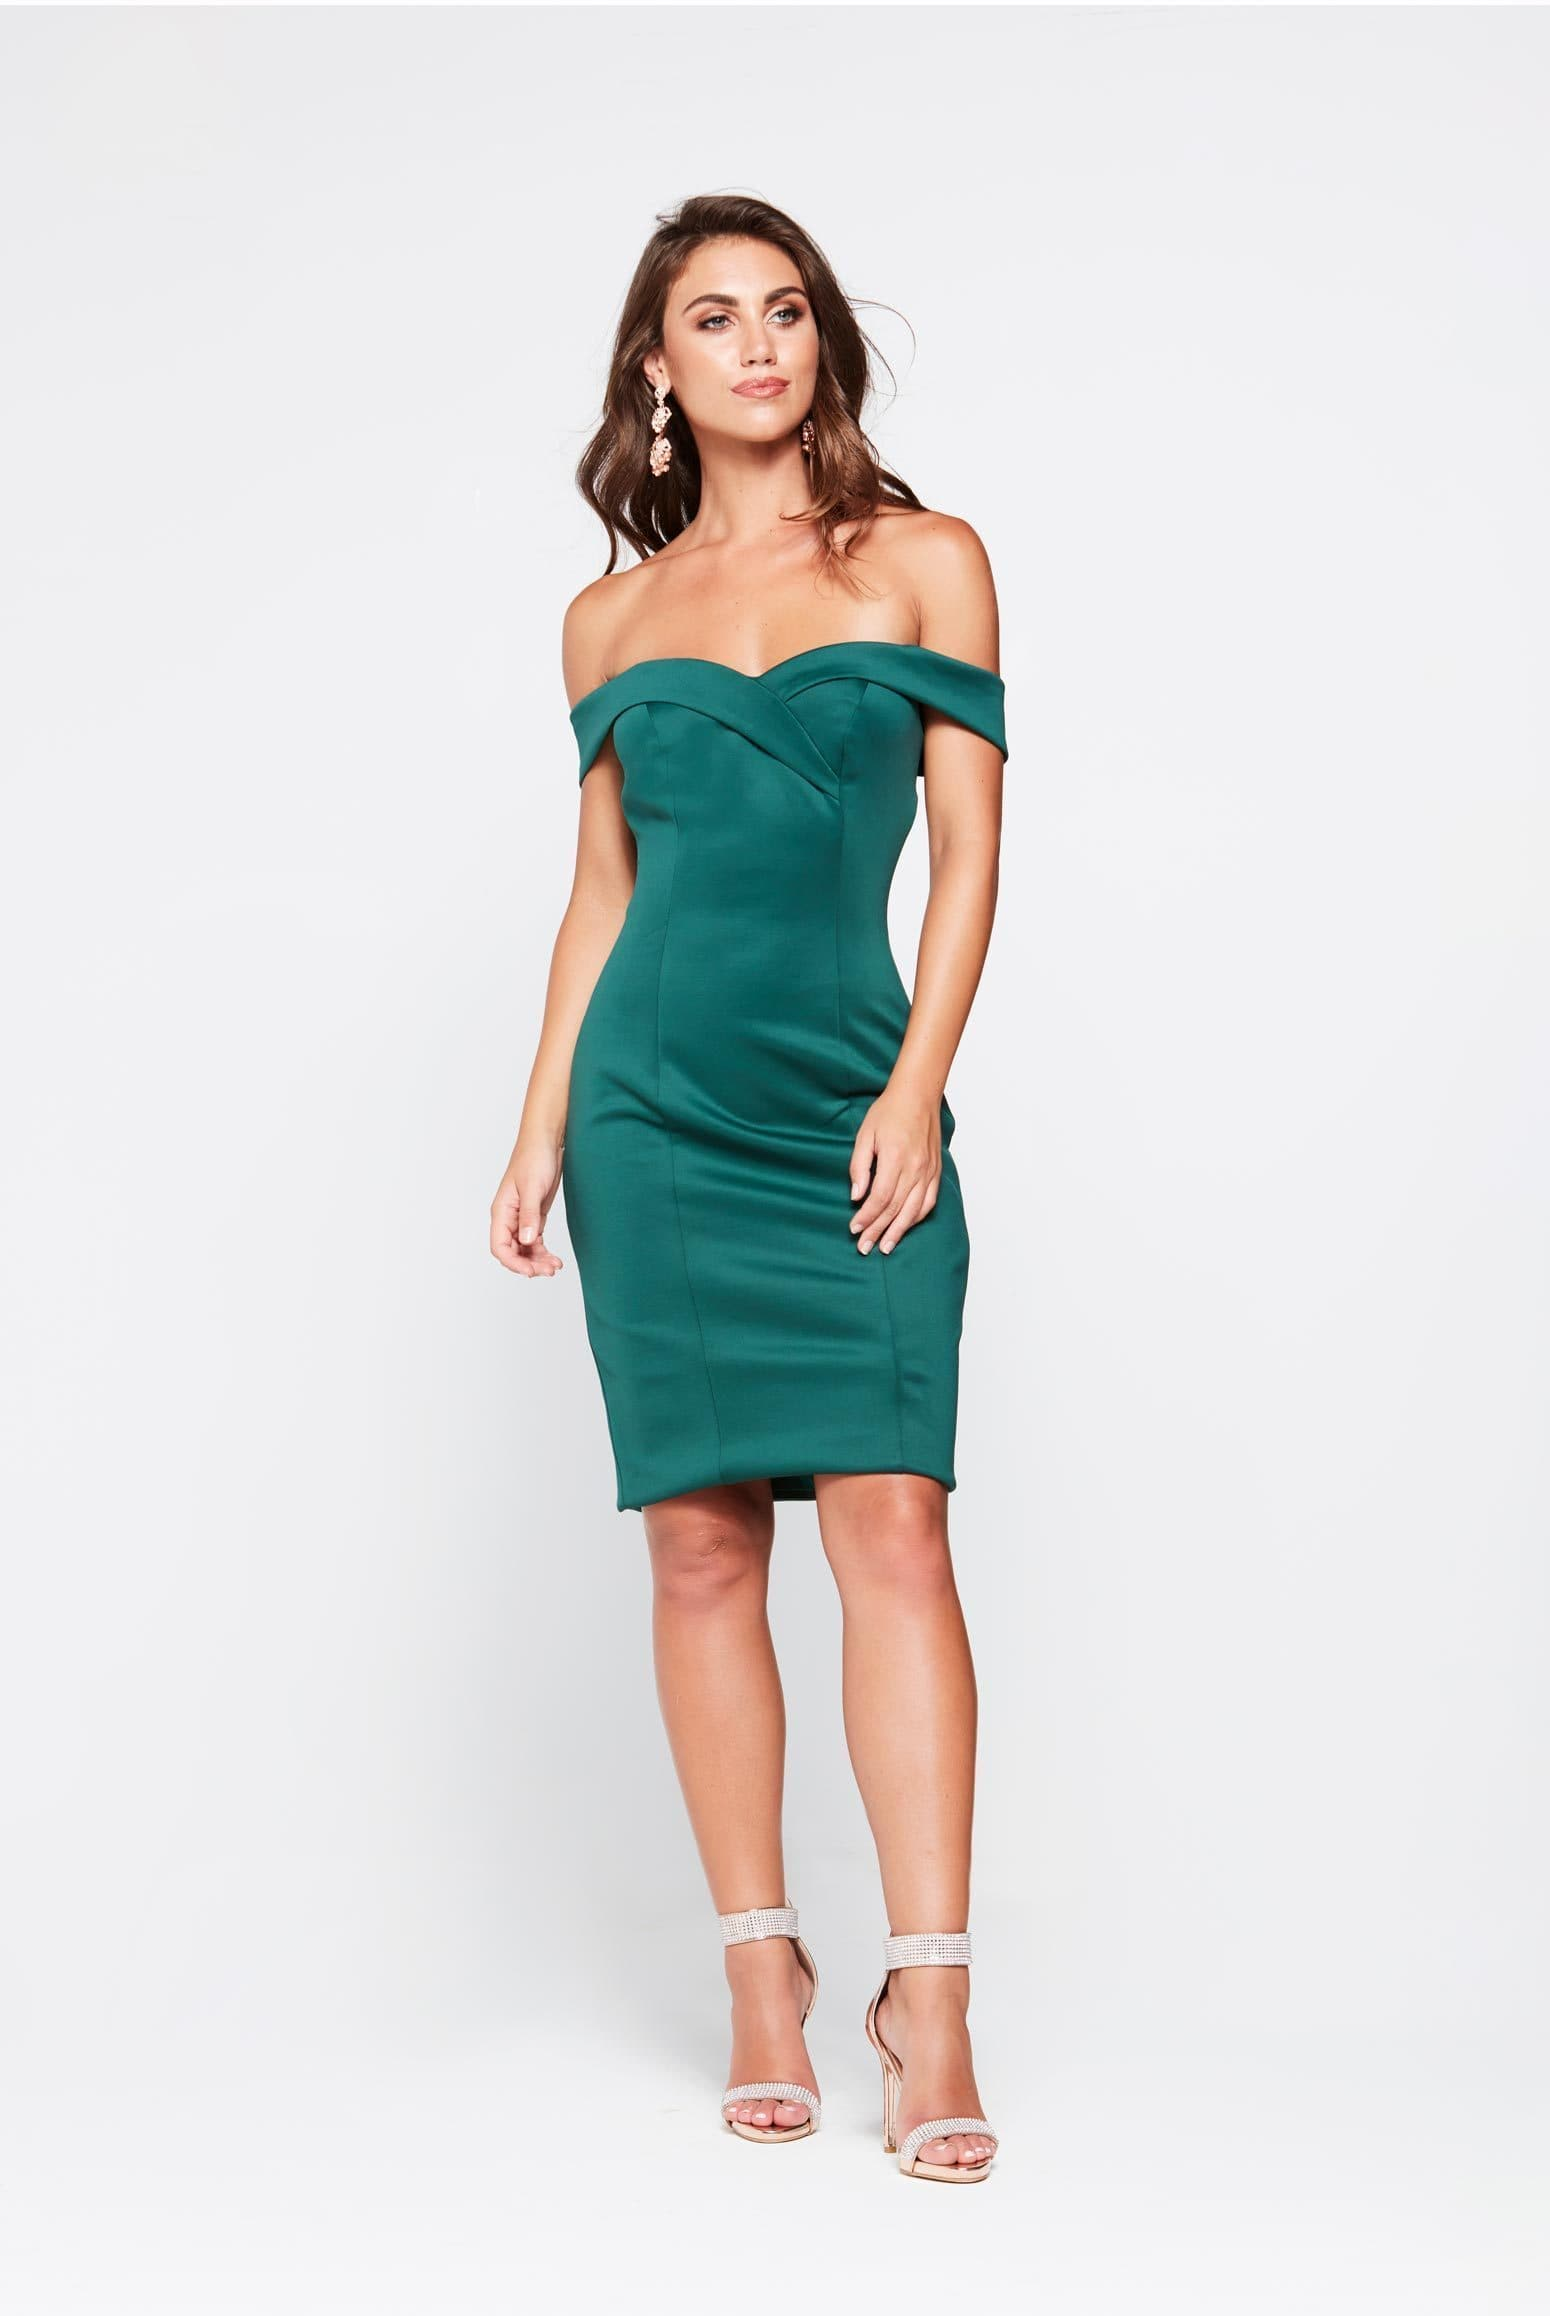 A&N Ester- Emerald Off Shoulder Cocktail Mini in Emerald